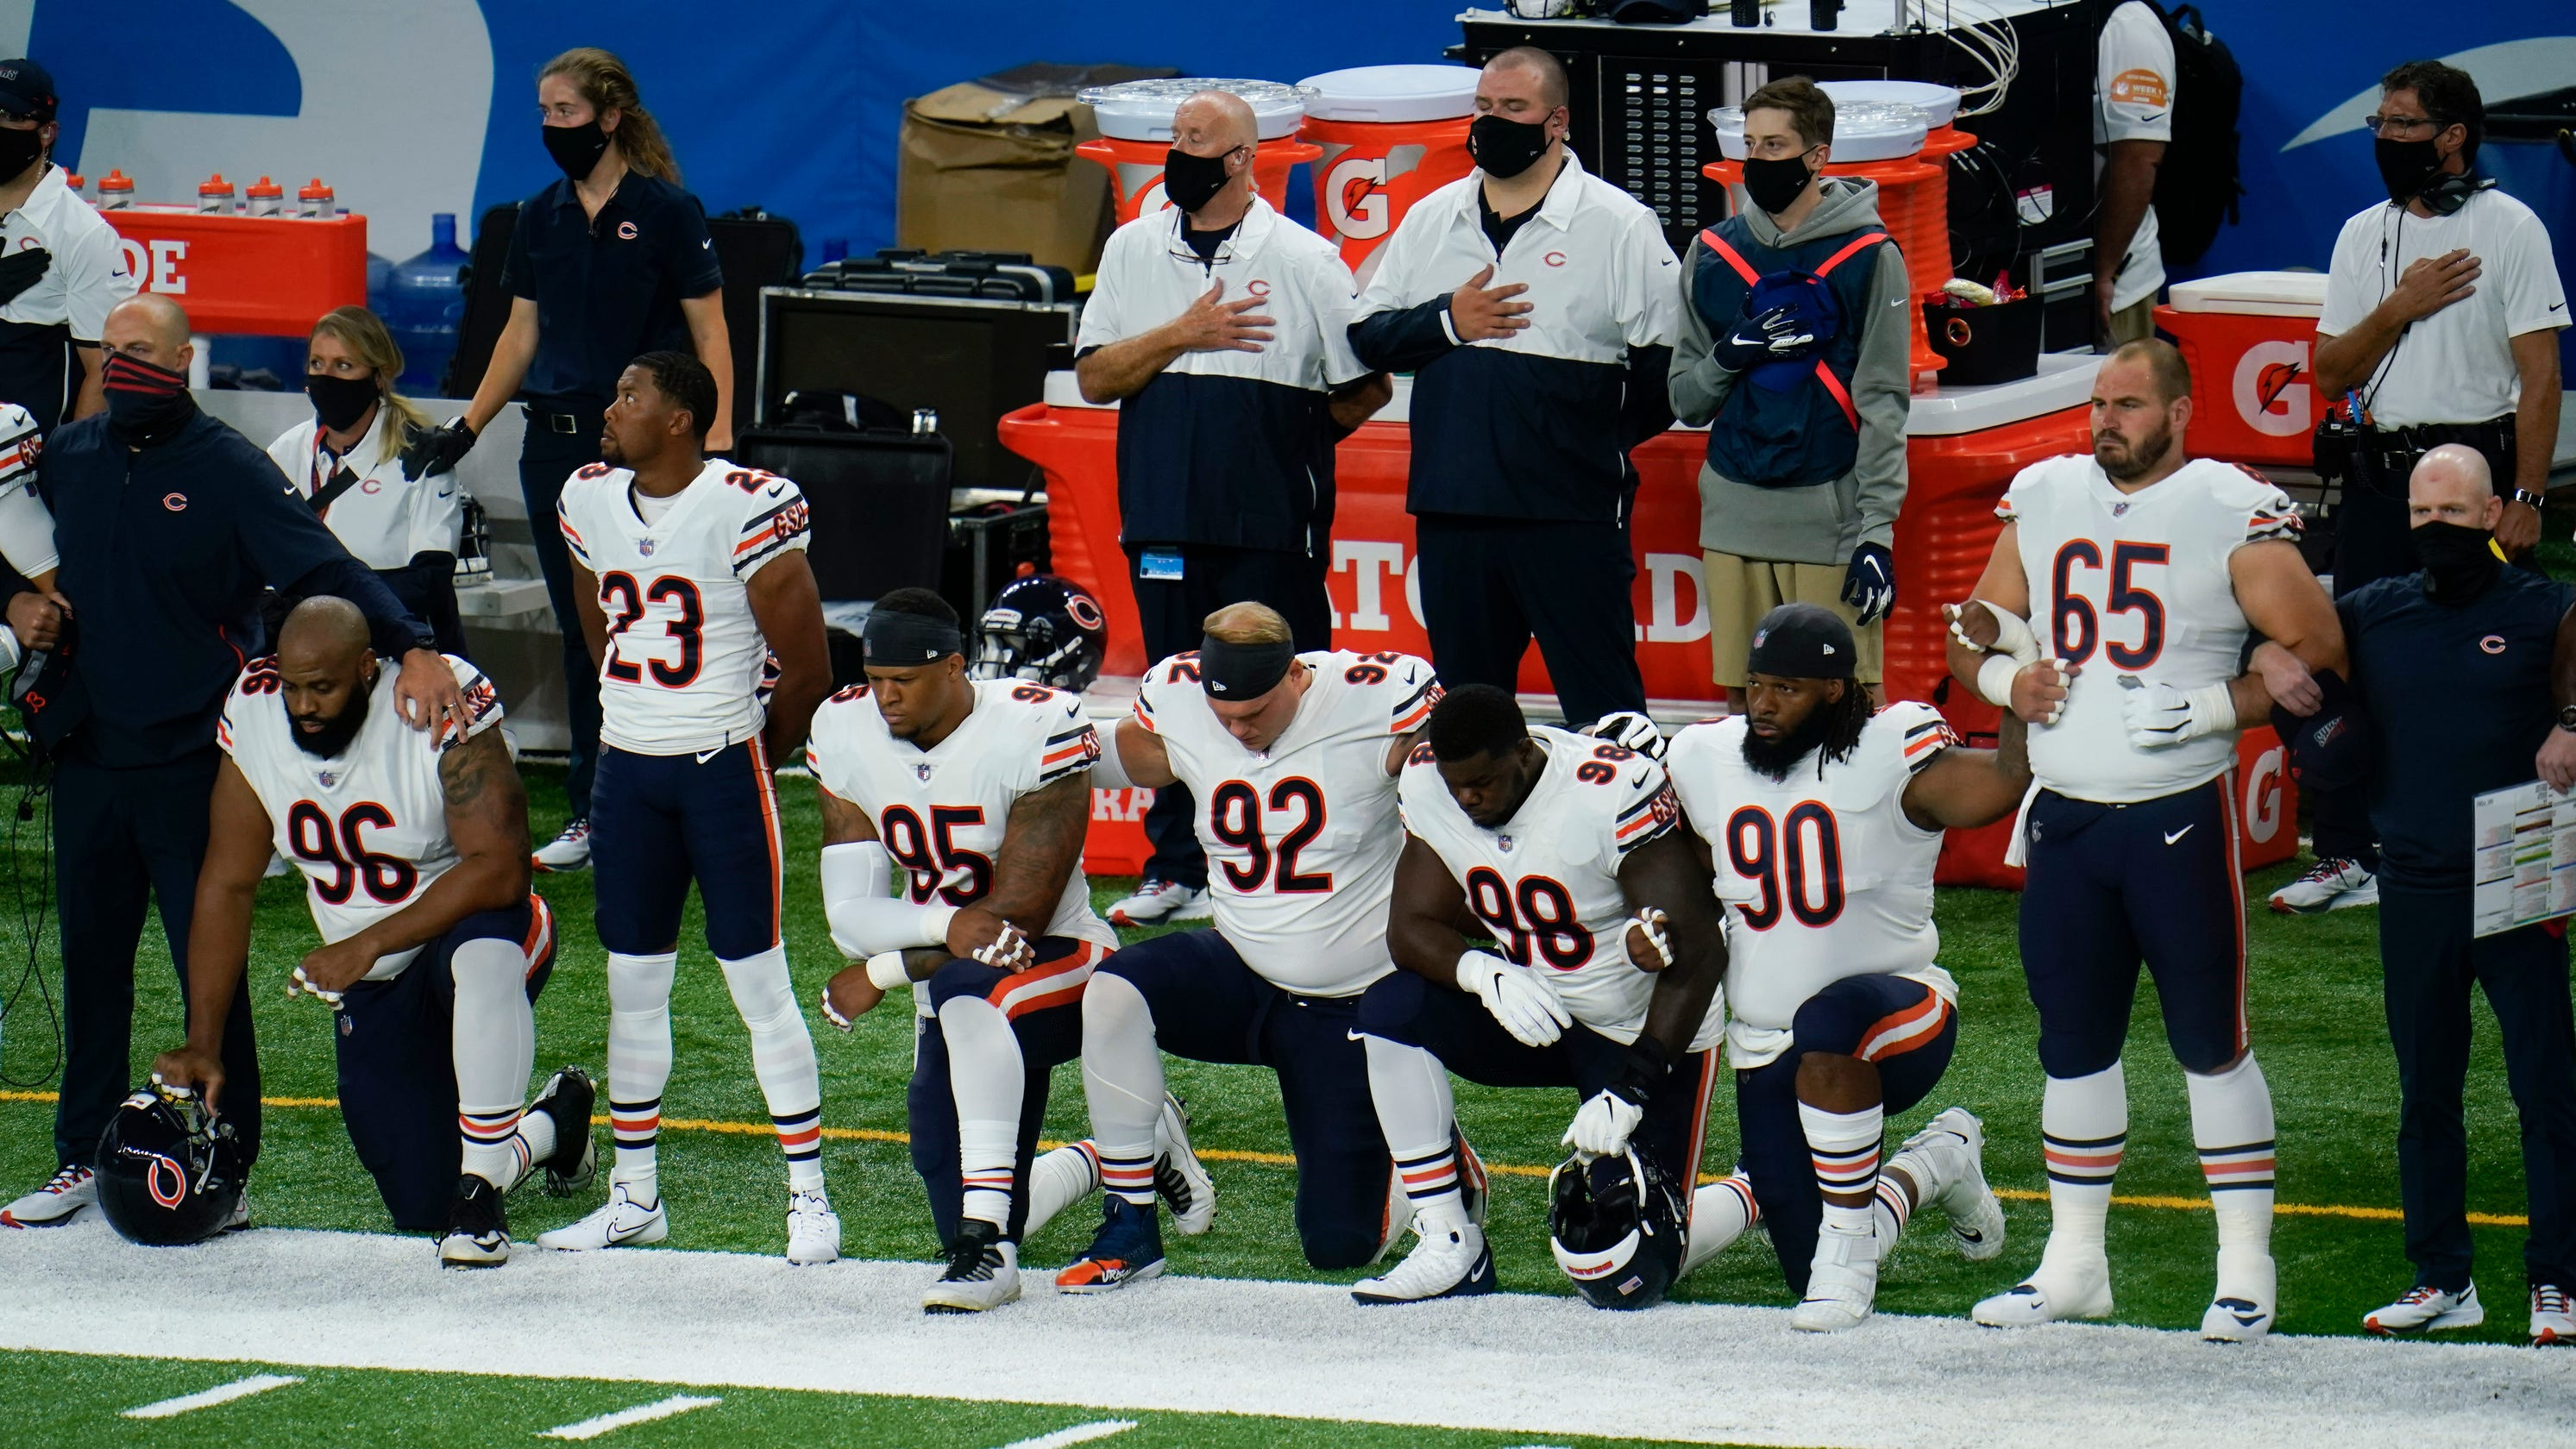 Several NFL teams remain in locker room, some players kneel for anthem during NFL Week 1